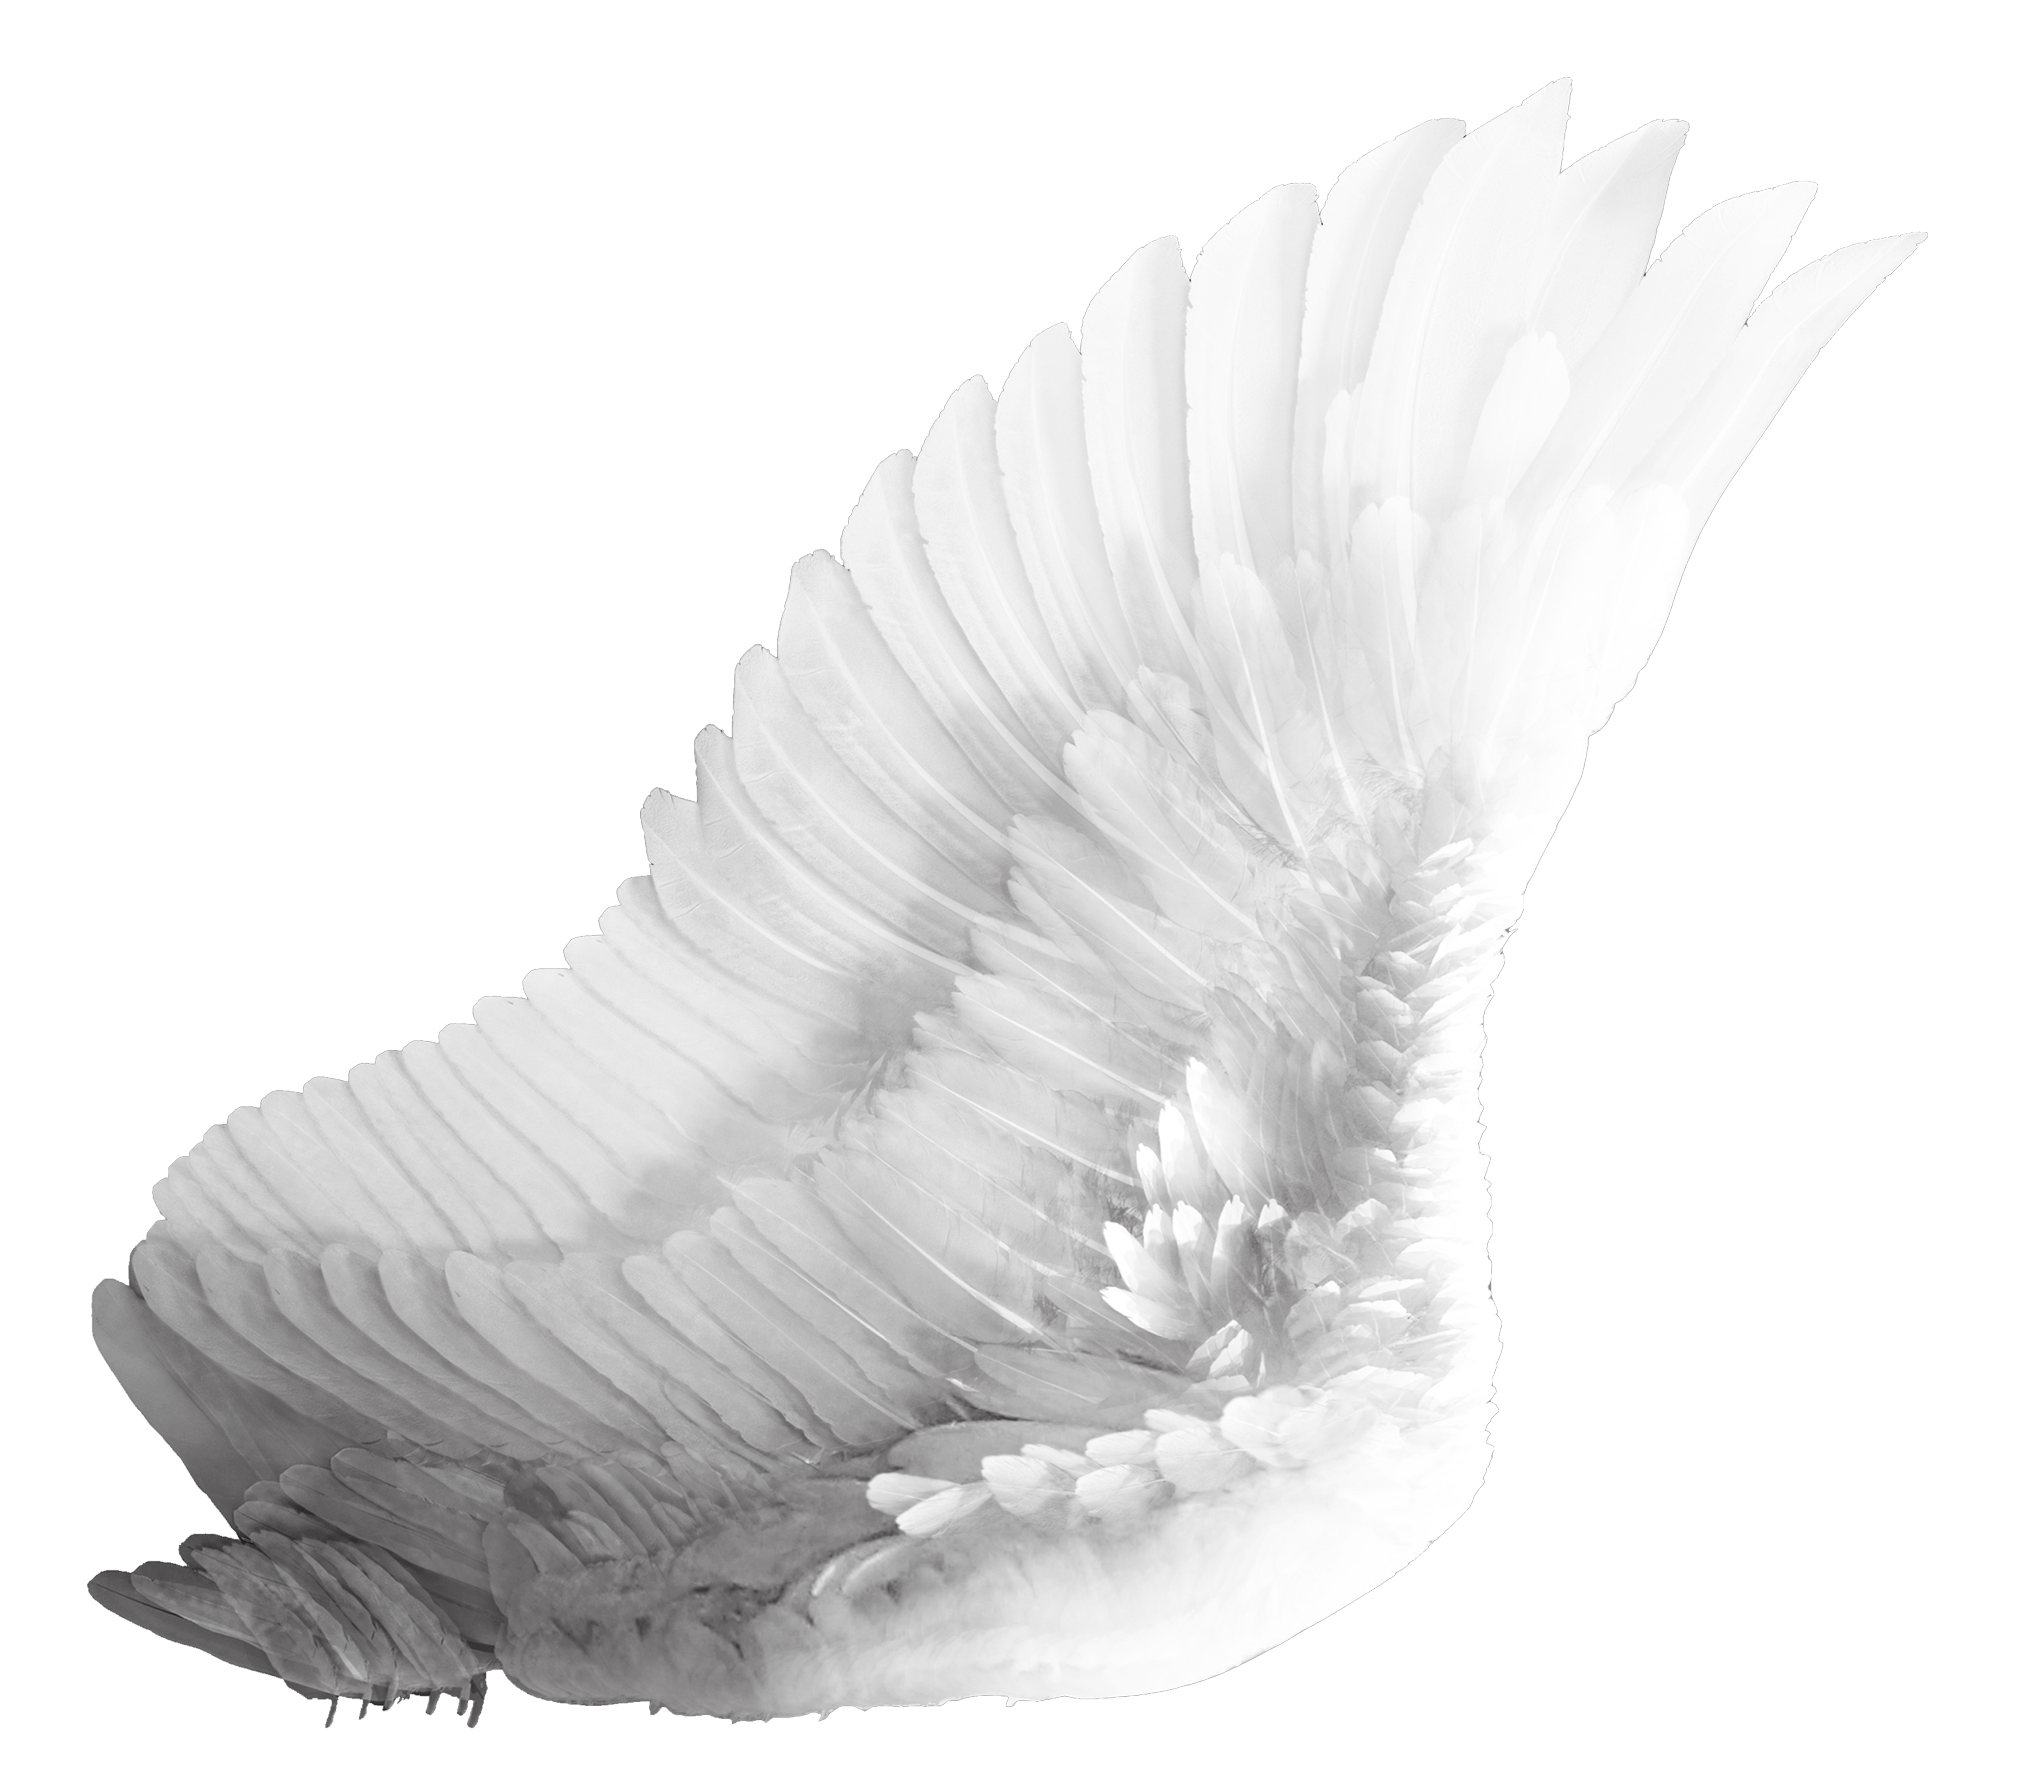 Angel feather png. Wings white image purepng